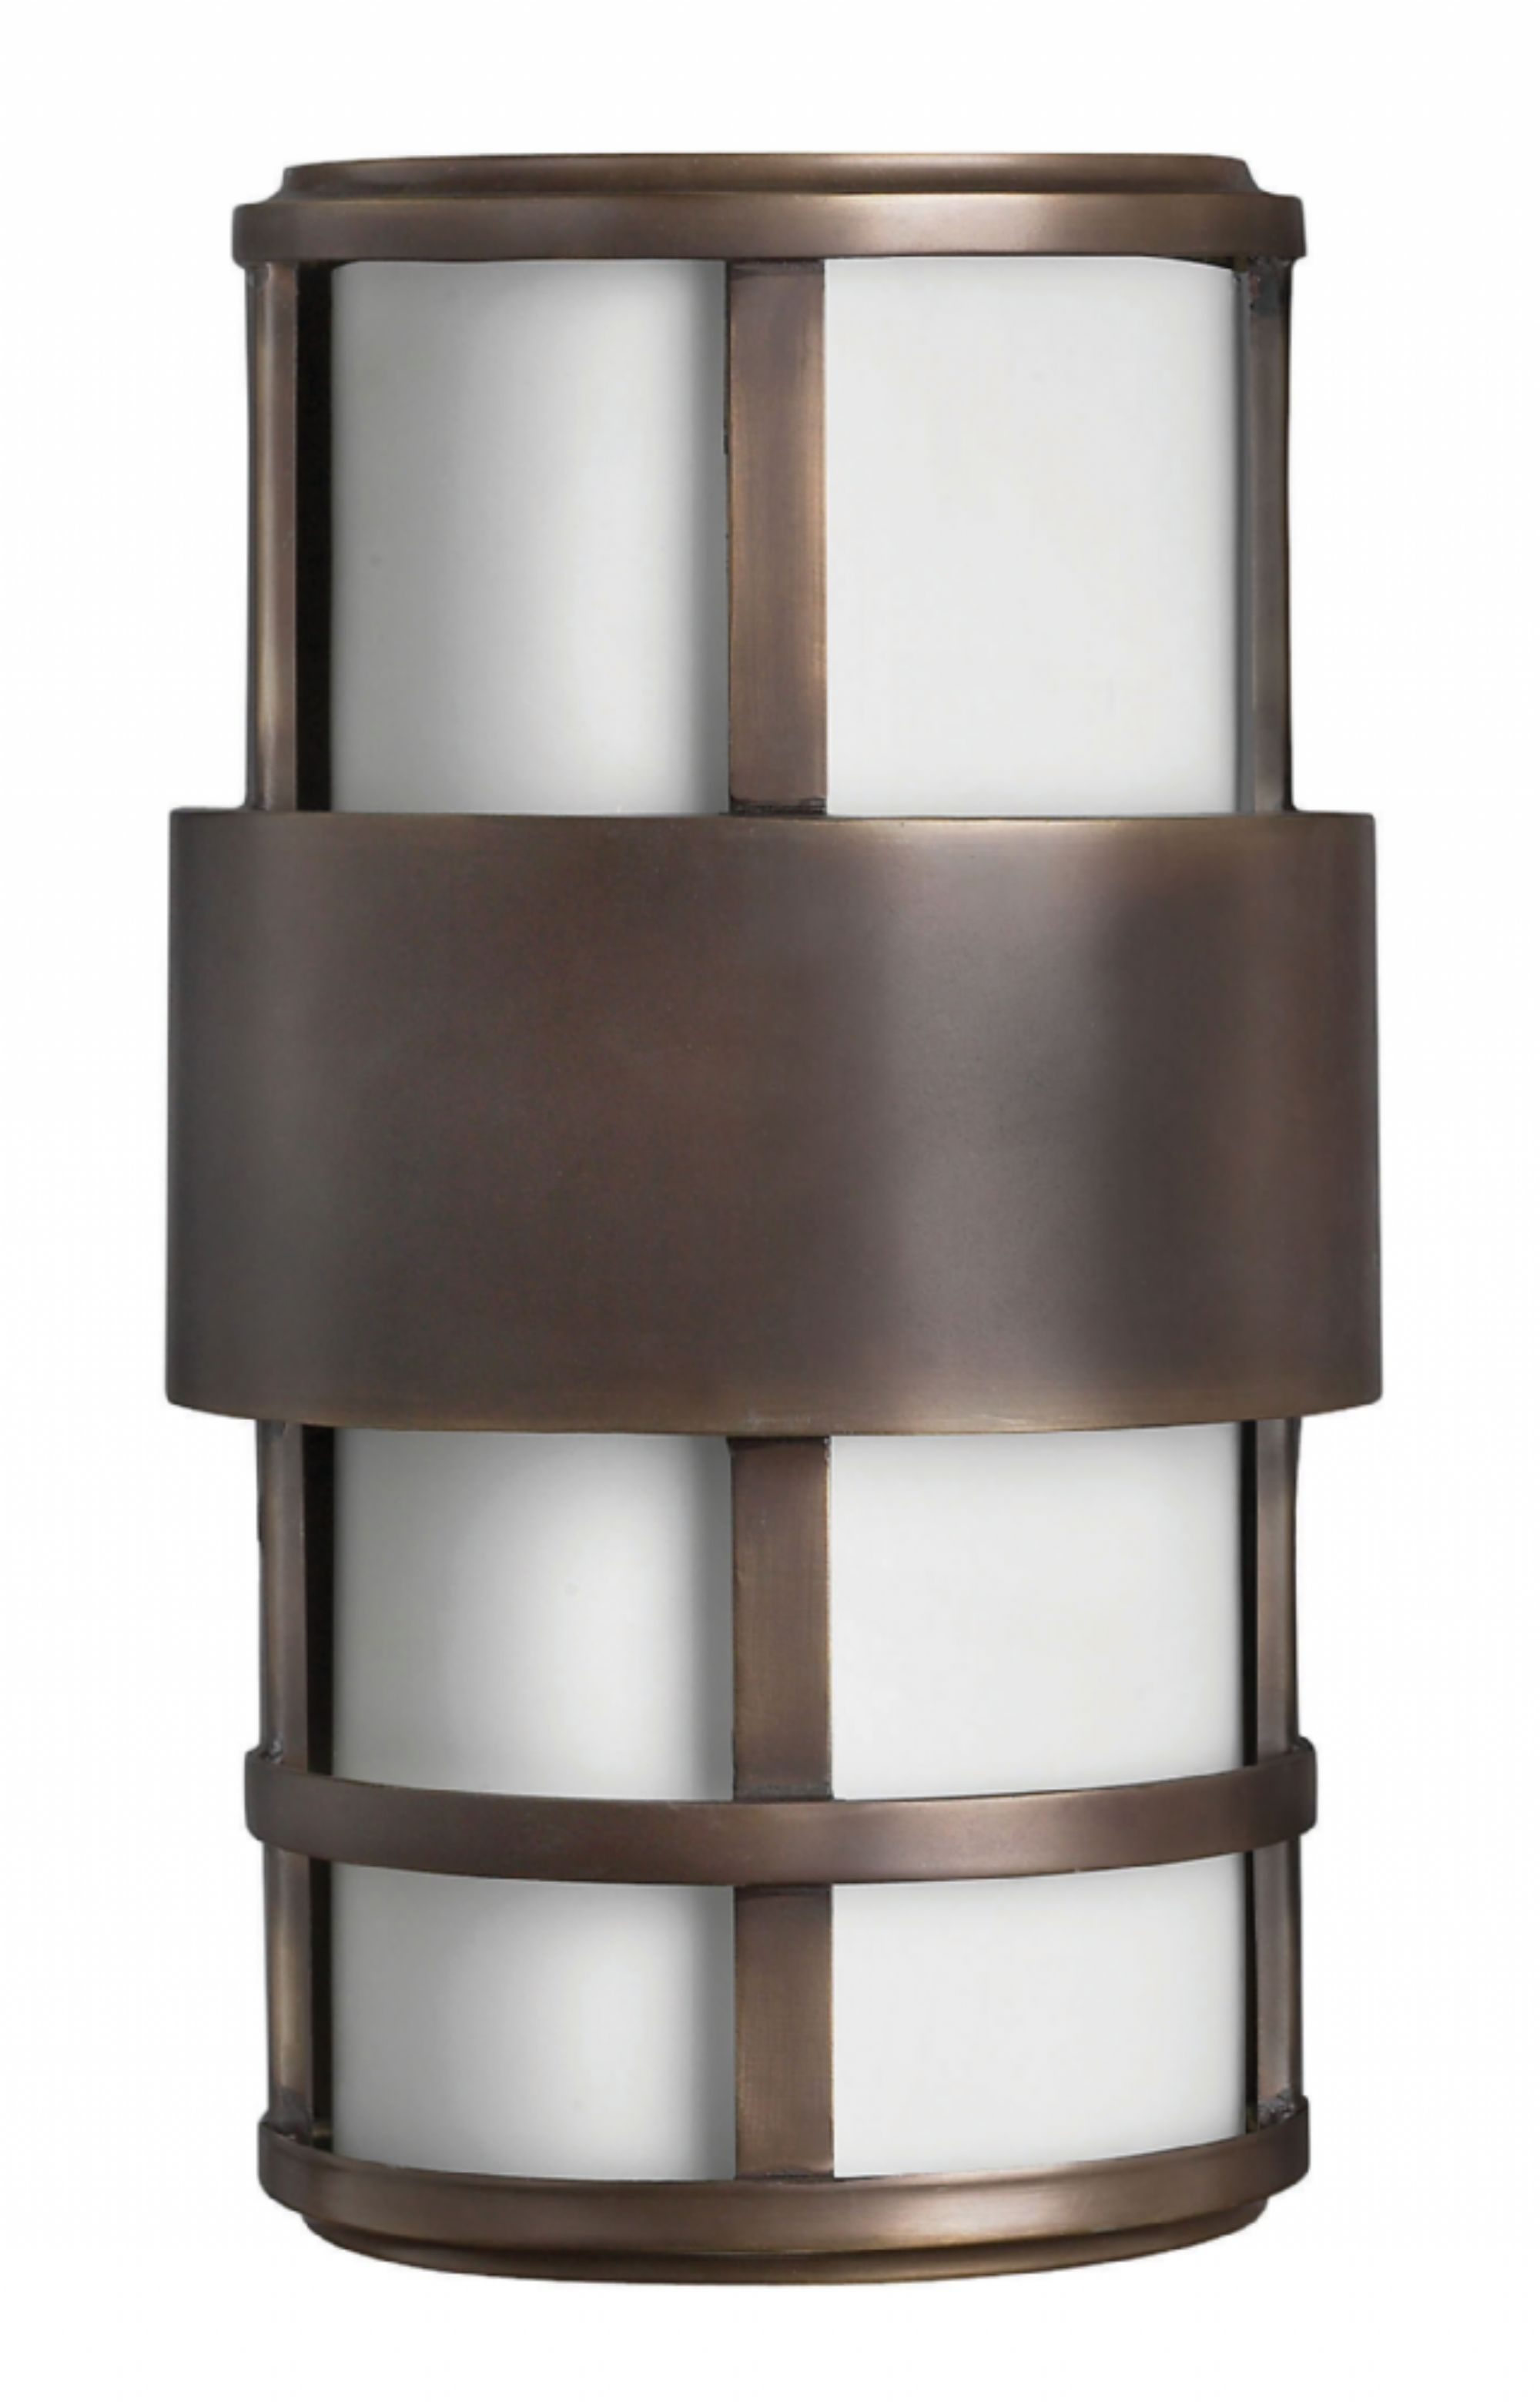 Metro Bronze Saturn > Exterior Wall Mount Regarding Large Wall Mount Hinkley Lighting (#11 of 15)